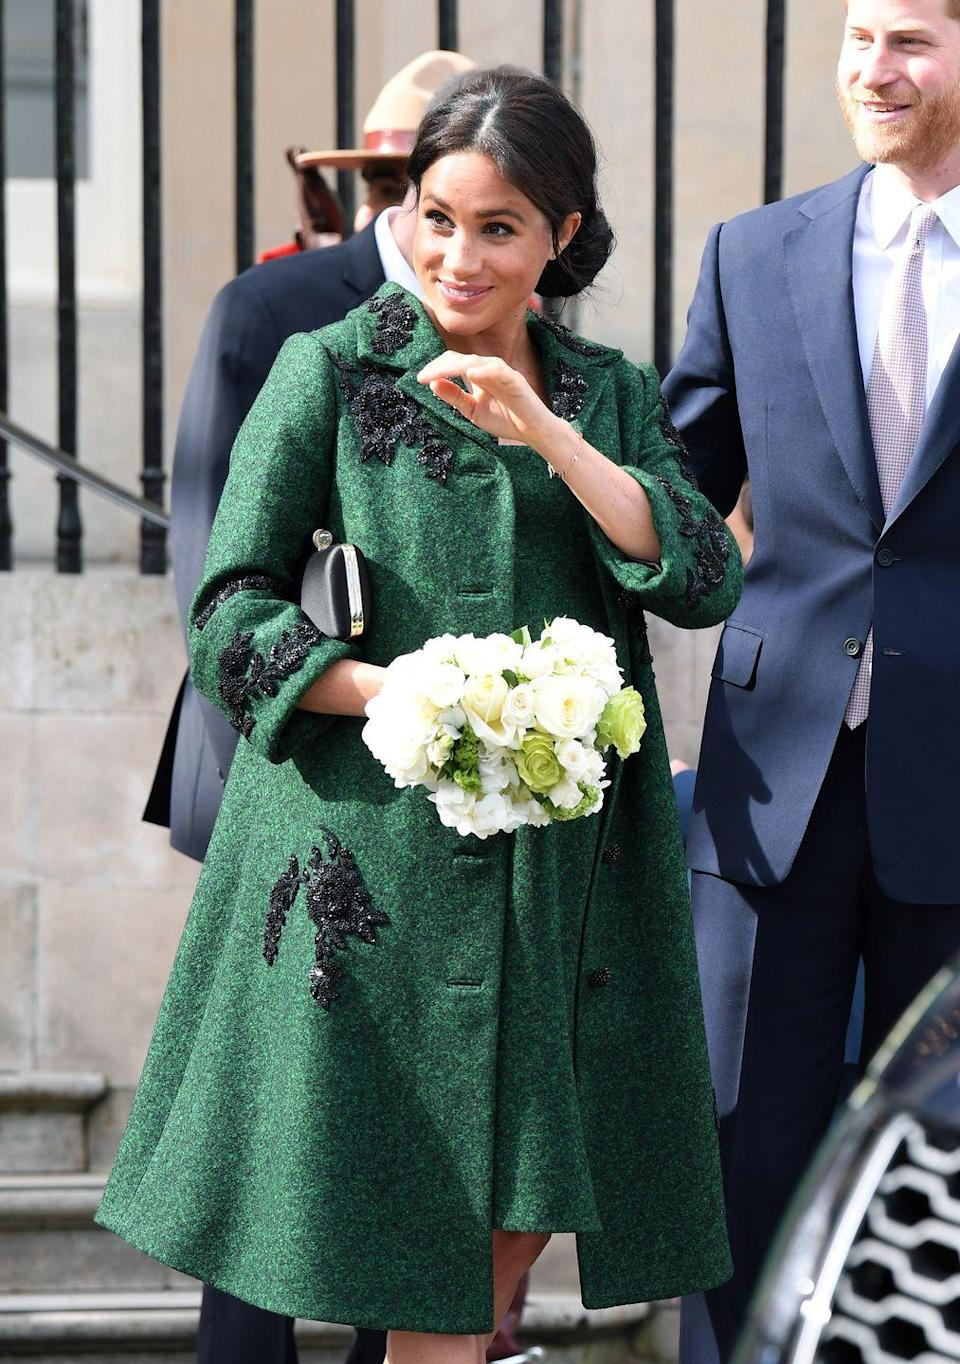 """<p><a href=""""https://www.townandcountrymag.com/society/tradition/a26782344/meghan-markle-erdem-coat-canada-house/"""" rel=""""nofollow noopener"""" target=""""_blank"""" data-ylk=""""slk:The Duchess of Sussex wore a custom Erdem coat"""" class=""""link rapid-noclick-resp"""">The Duchess of Sussex wore a custom Erdem coat</a> and dress to an event at Canada House on Commonwealth day, which featured intricate floral details.<br></p>"""